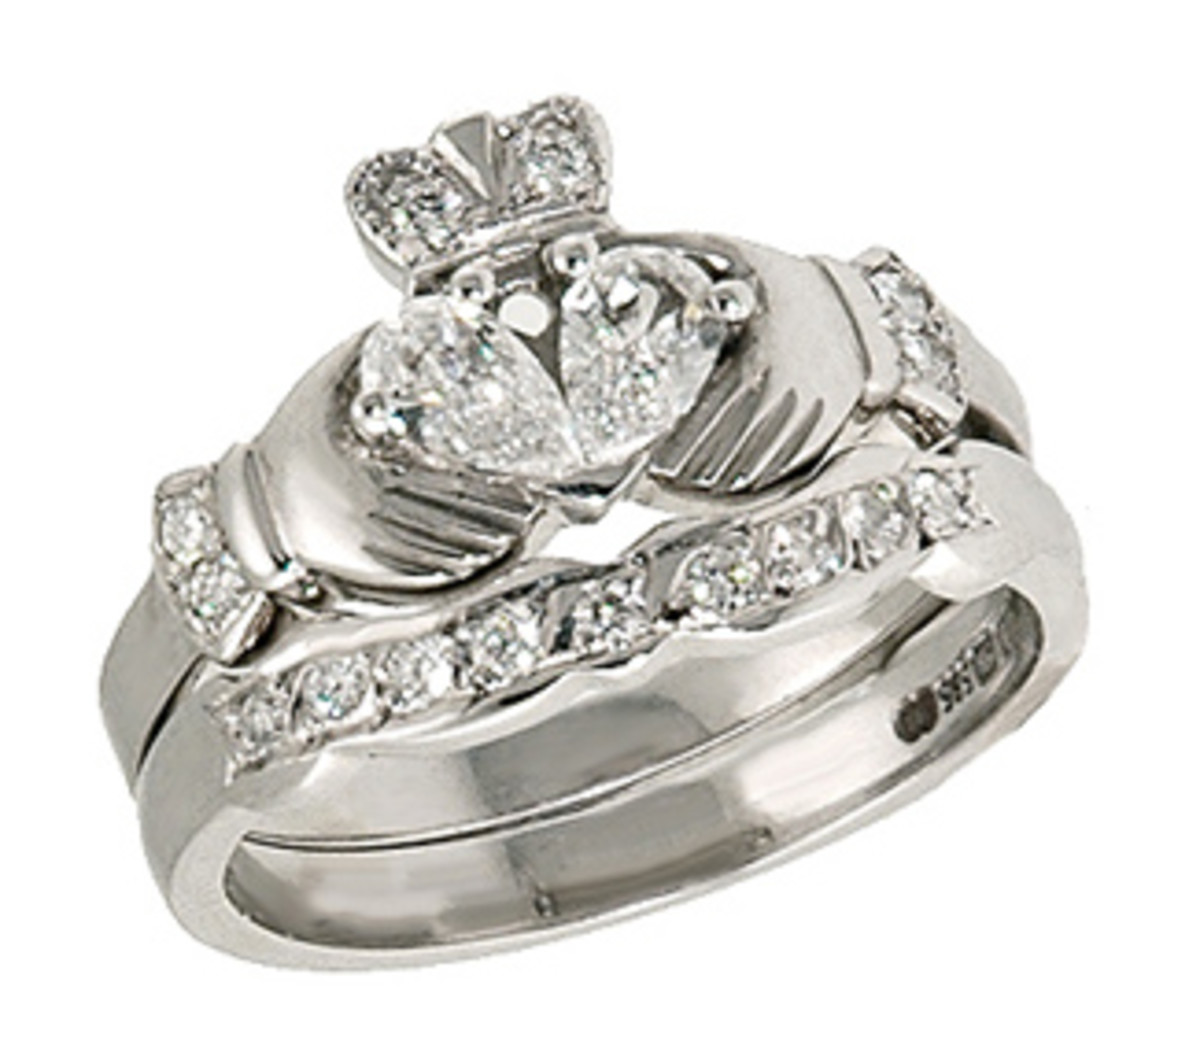 Top International Engagement Rings and Wedding Ring Designs